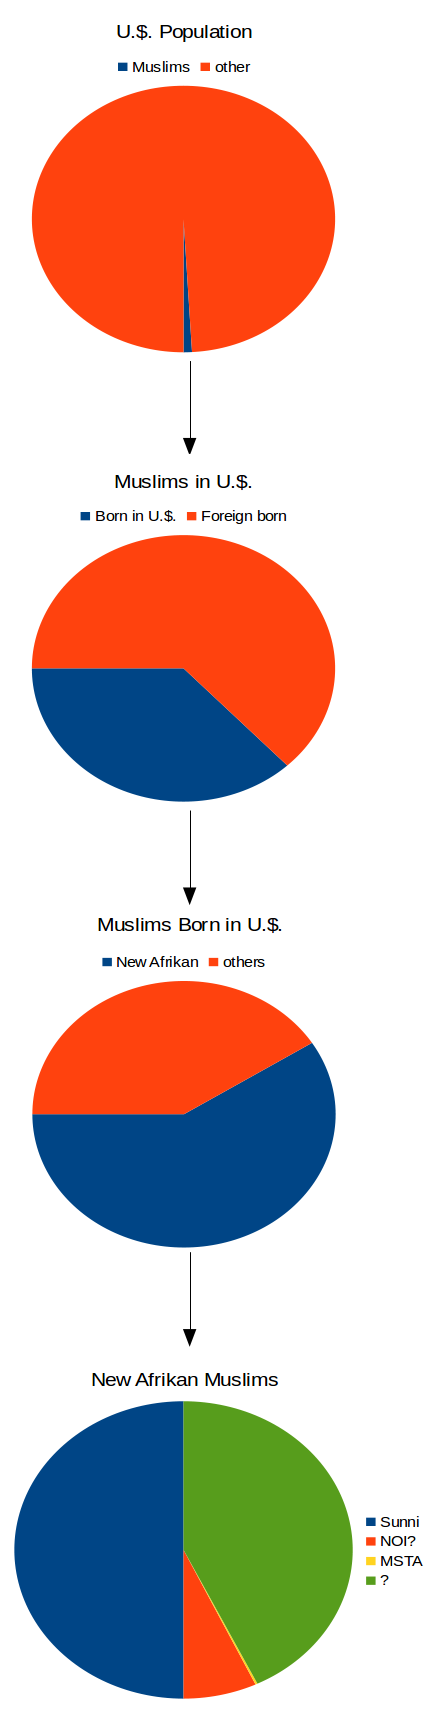 Islam in U.S. and Blacks percentages